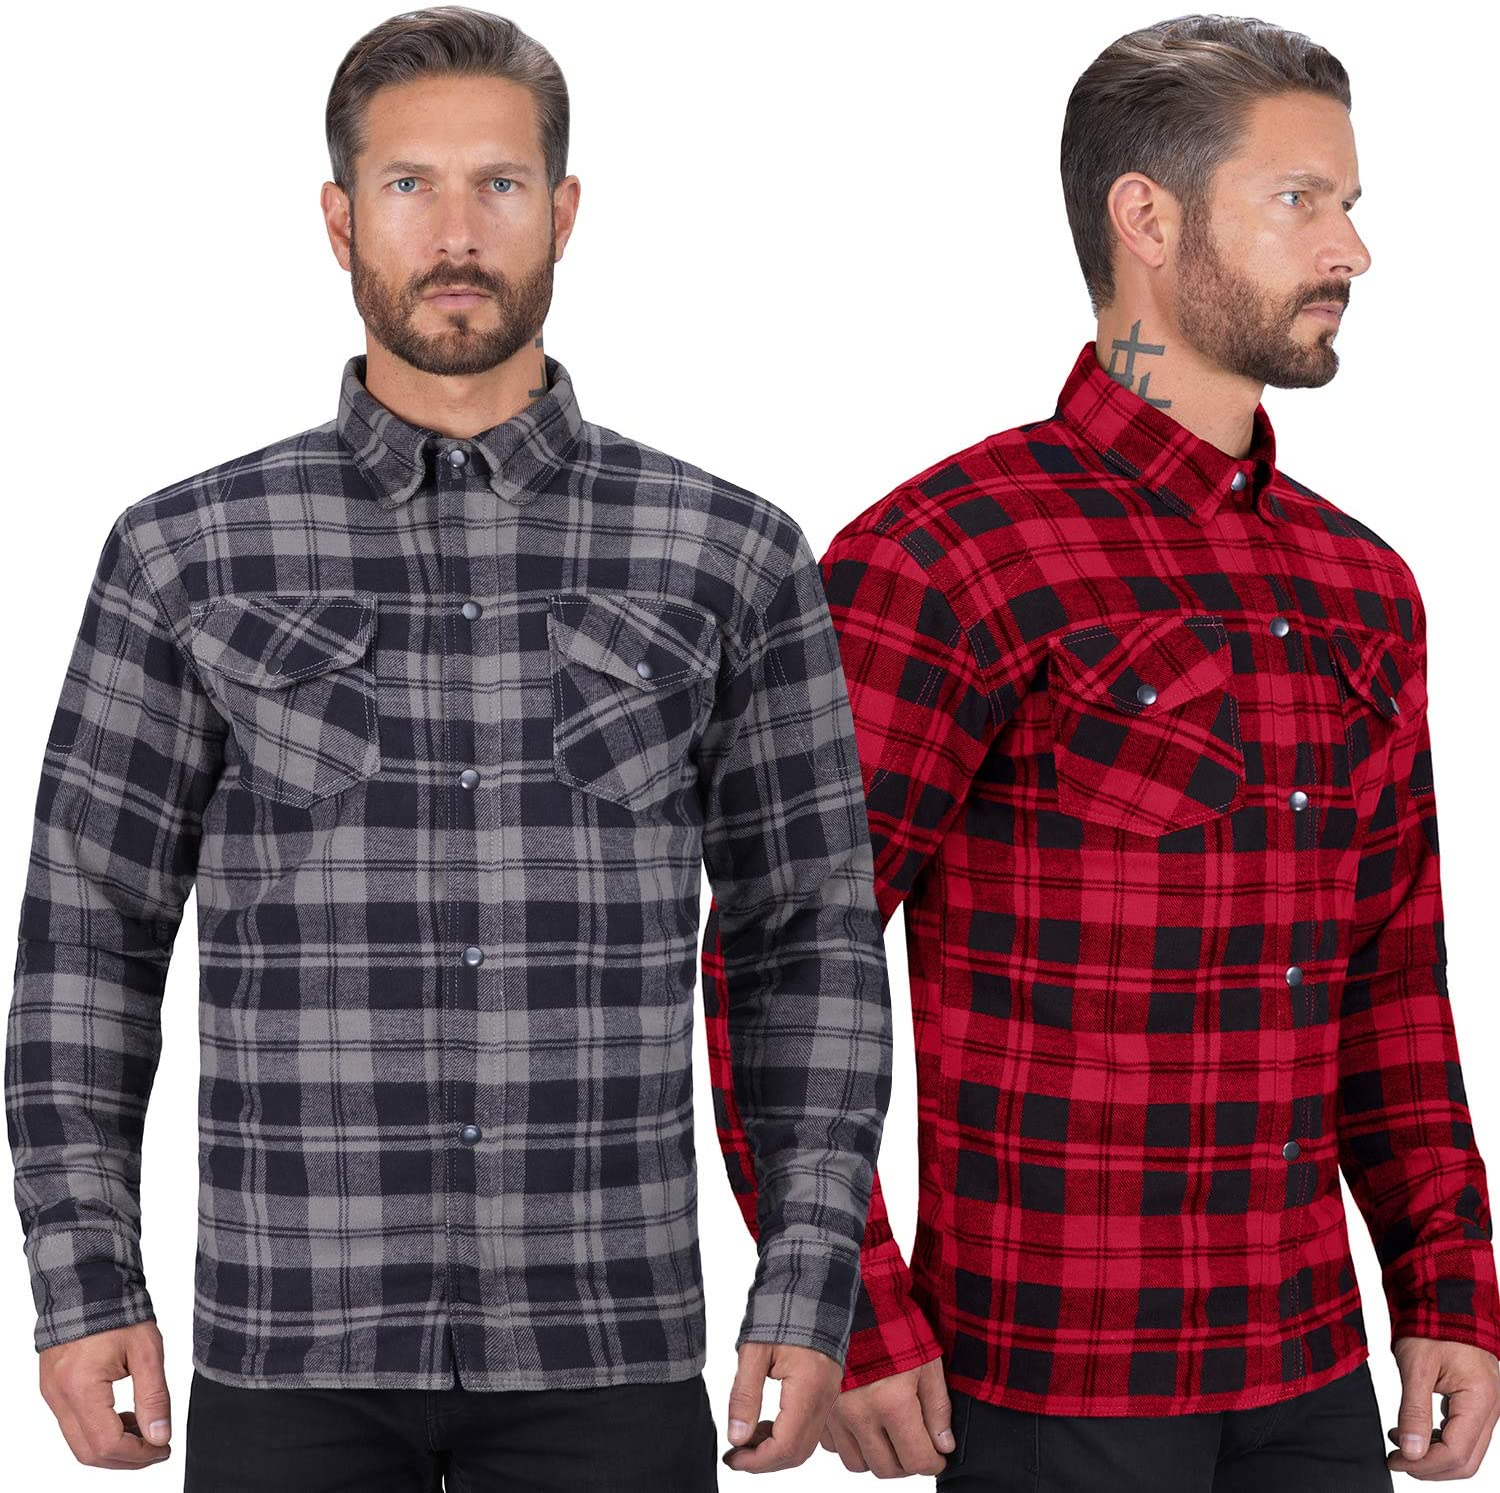 Viking Cycle Motorcycle Flannel Shirt for Biker Men - CE Armor Protection with Multiple Pockets for Storage (Black, X-Large)